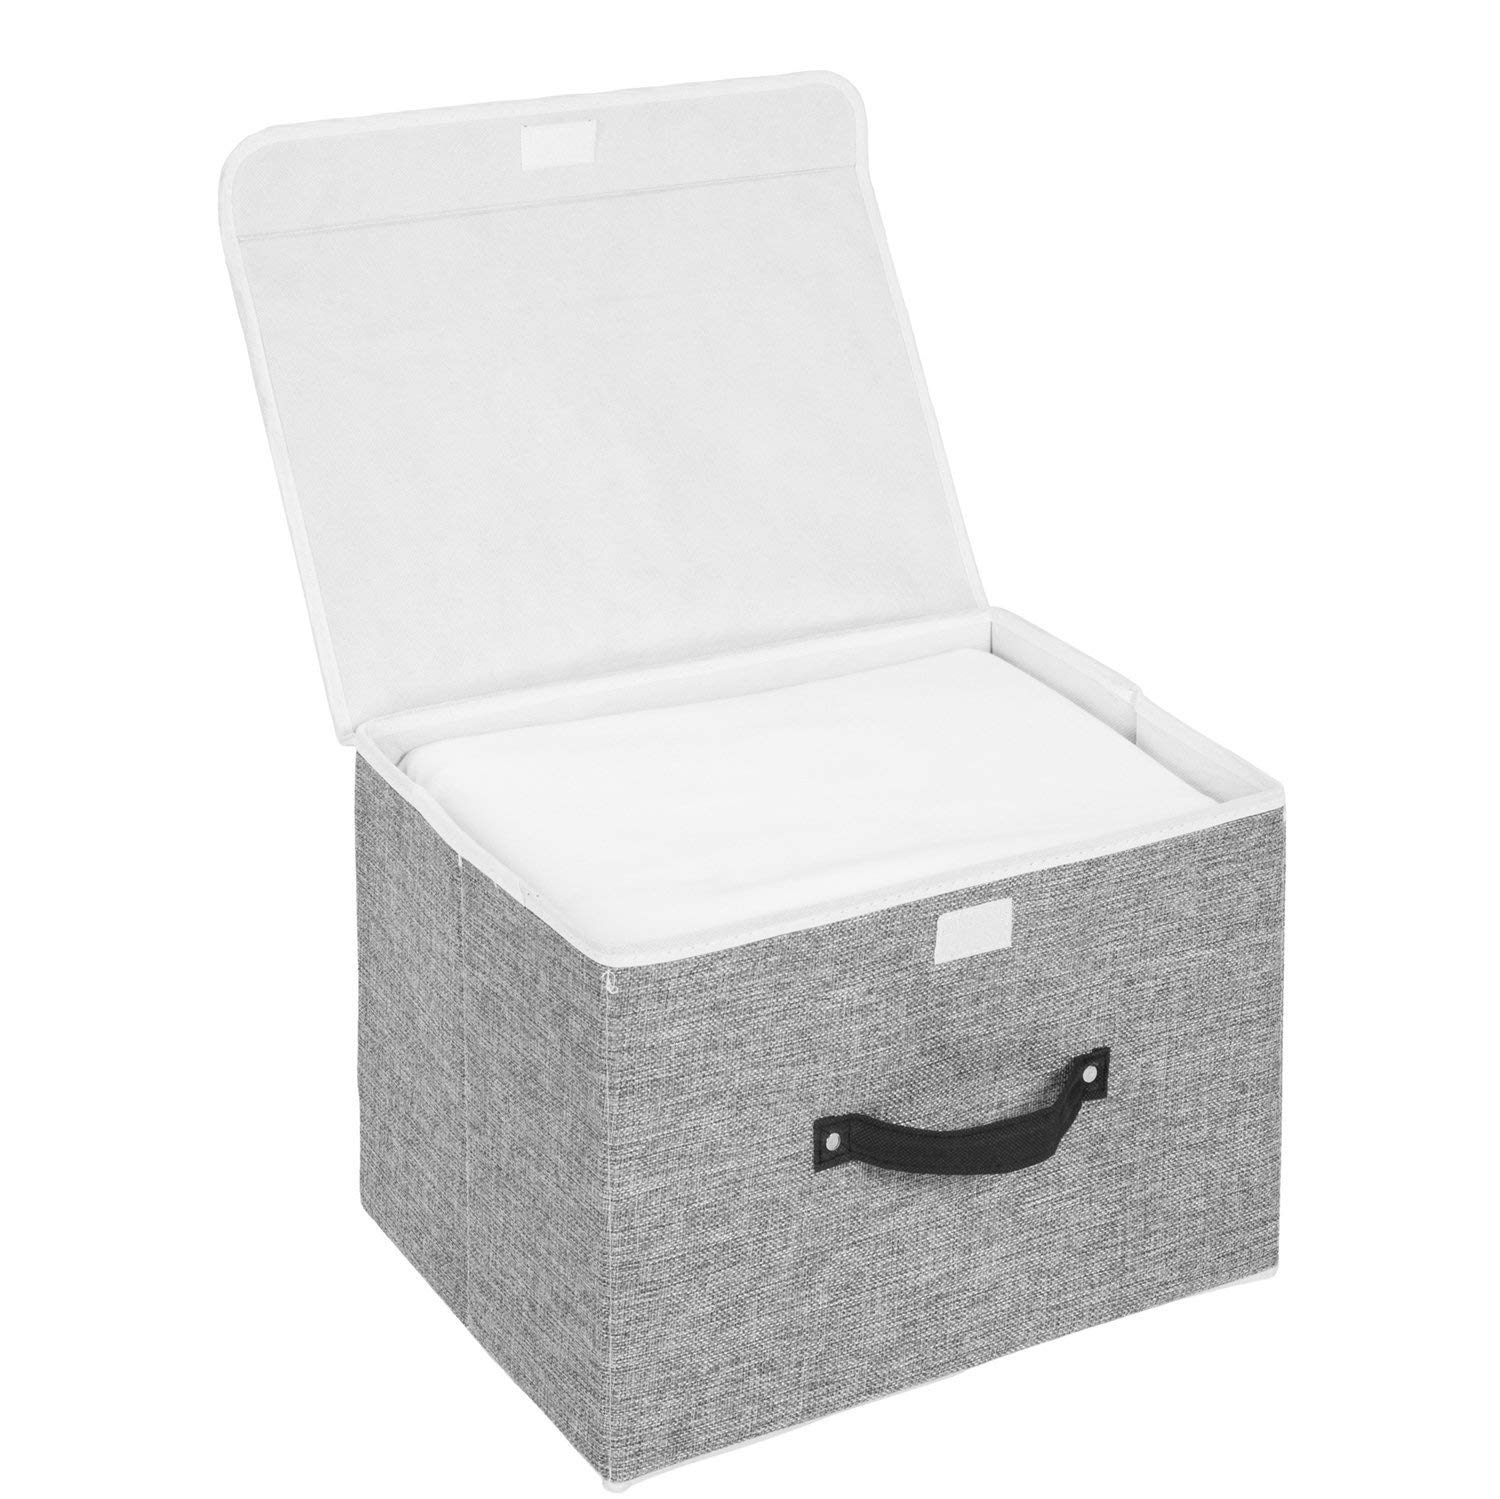 EZ GENERATION Storage Bins Set, Storage Baskets Pack of 2 Foldable Storage Boxes Cubes with Lids, Fabric Storage Bin Organizer Collapsible Box Containers for Nursery,Closet,Bedroom,Home(Light Gray)